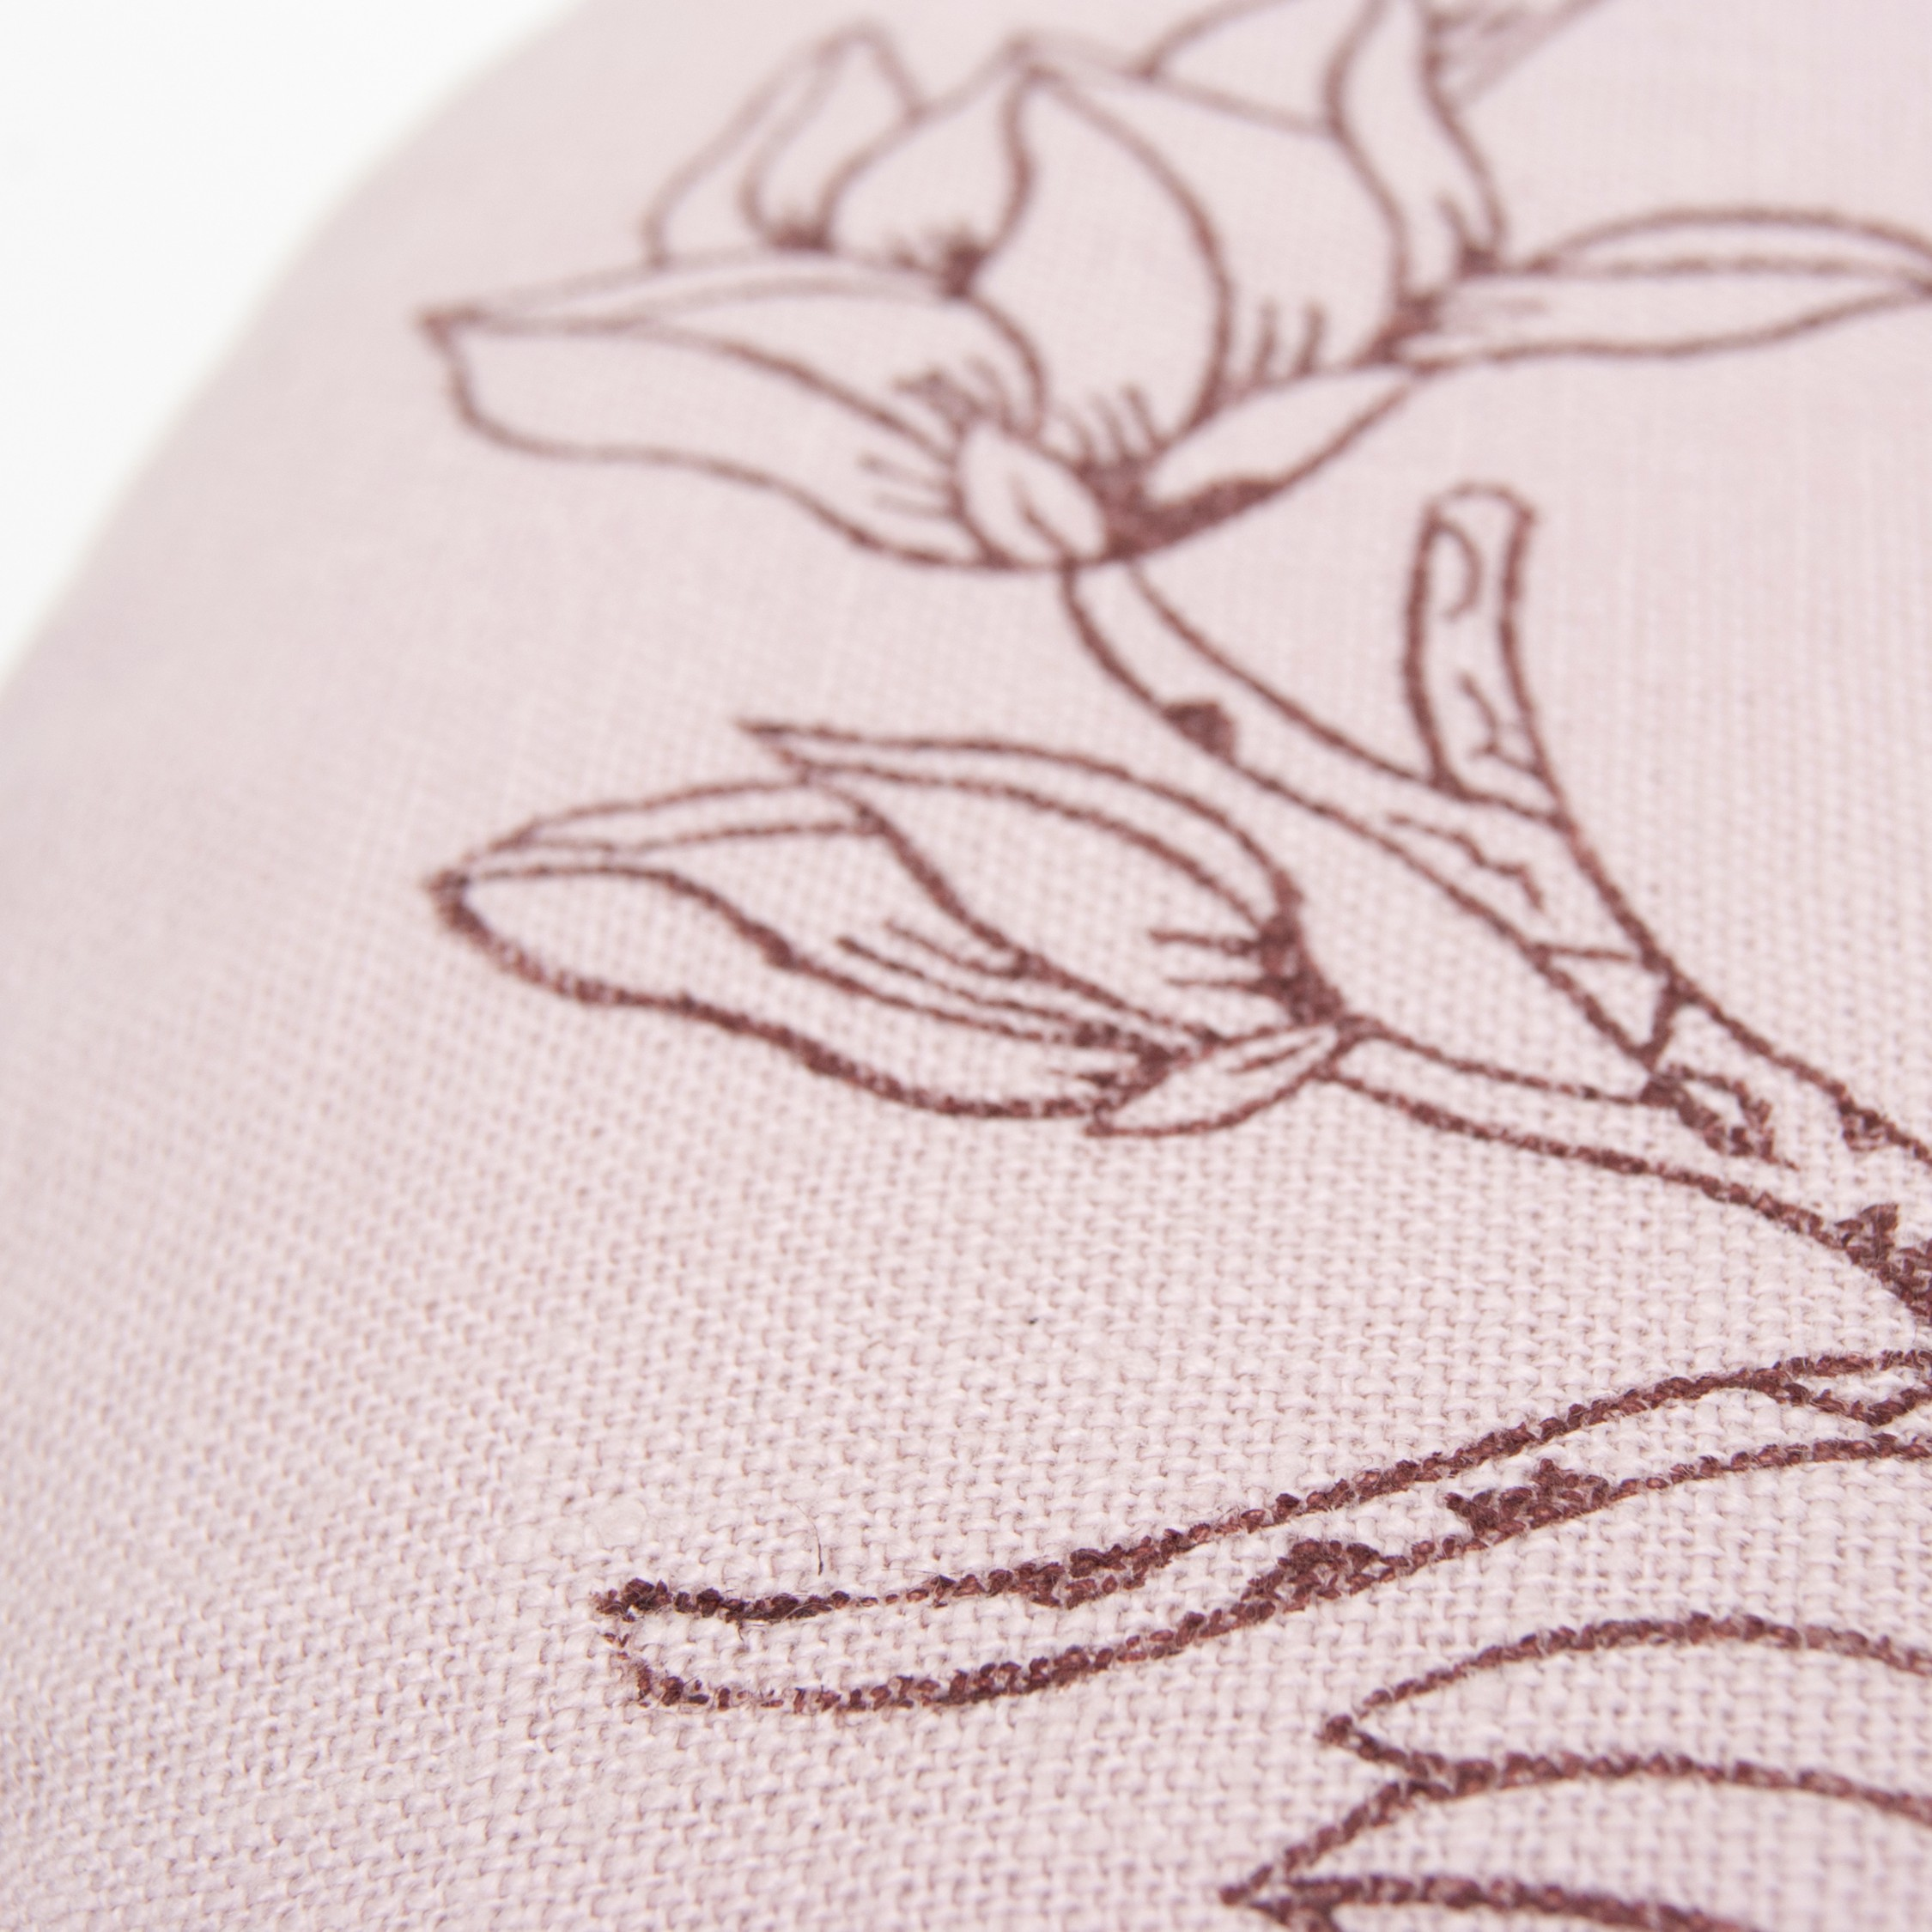 Print of the Magnolia meditation cushion, made with a handcarved wooden stamp